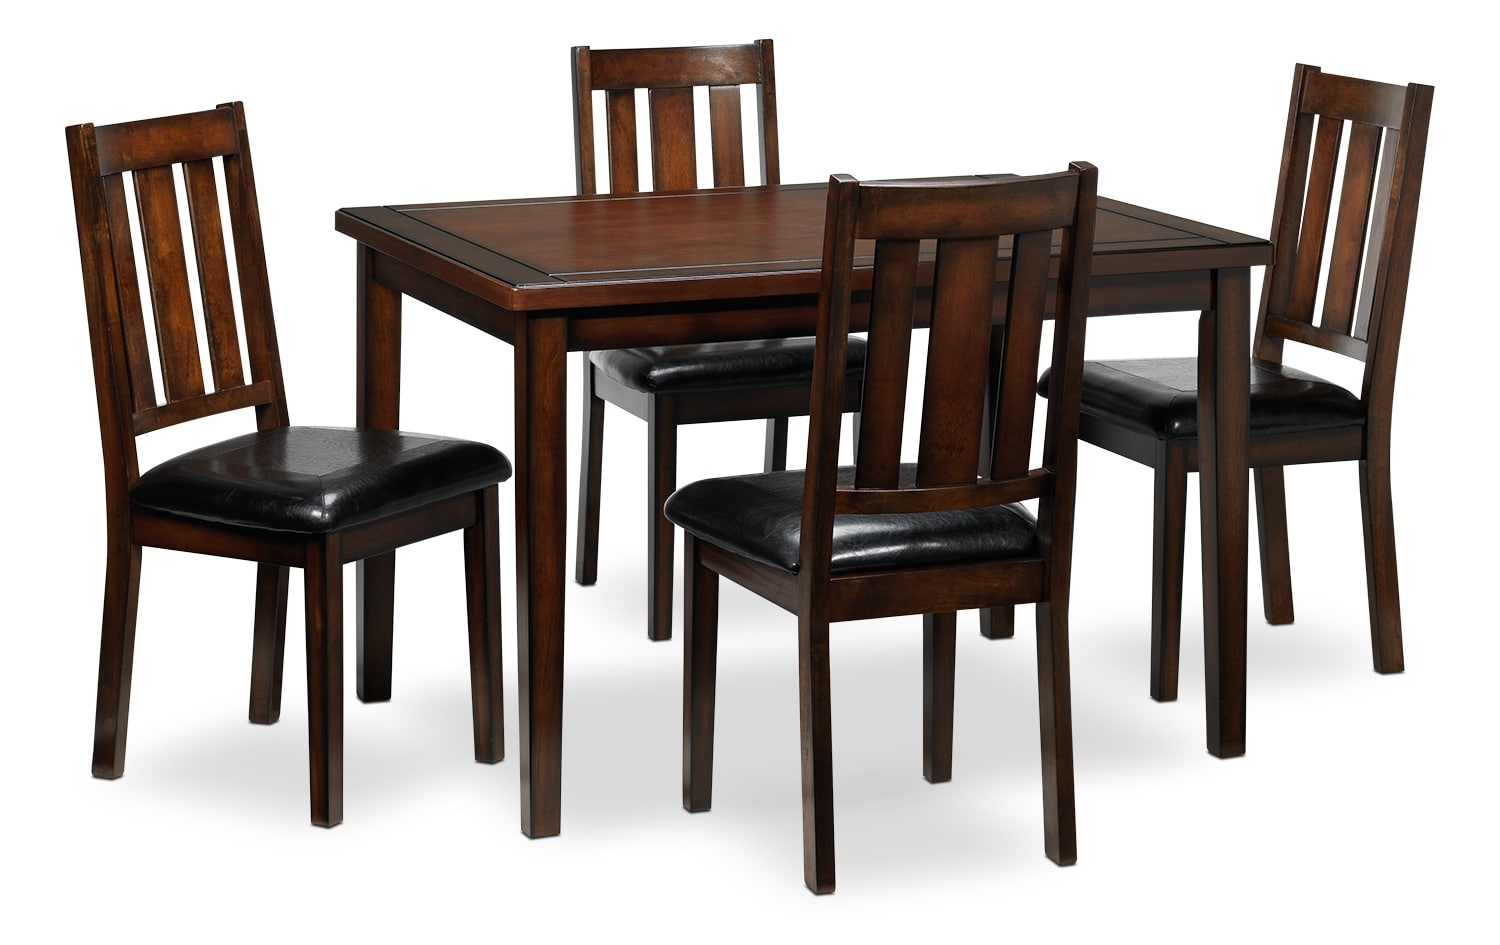 Casual Dining Room Furniture - Boyd 5-Piece Dinette Set - Dark Brown Cherry